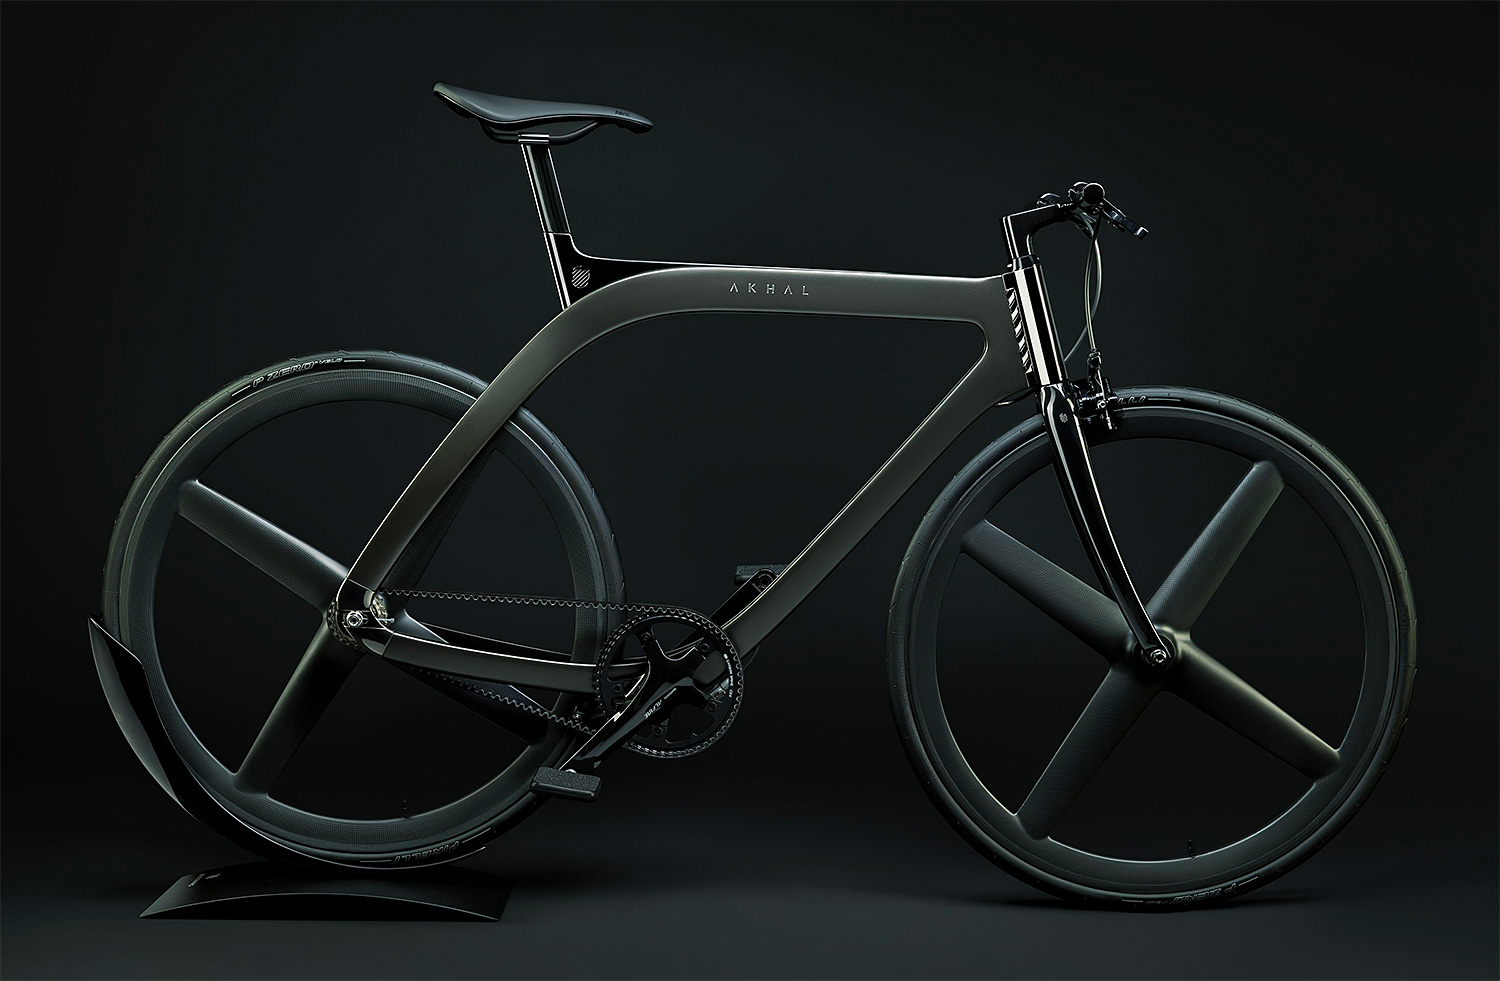 The Akhal Shadow is a Sleek Steed Inspired by a Purebred at werd.com